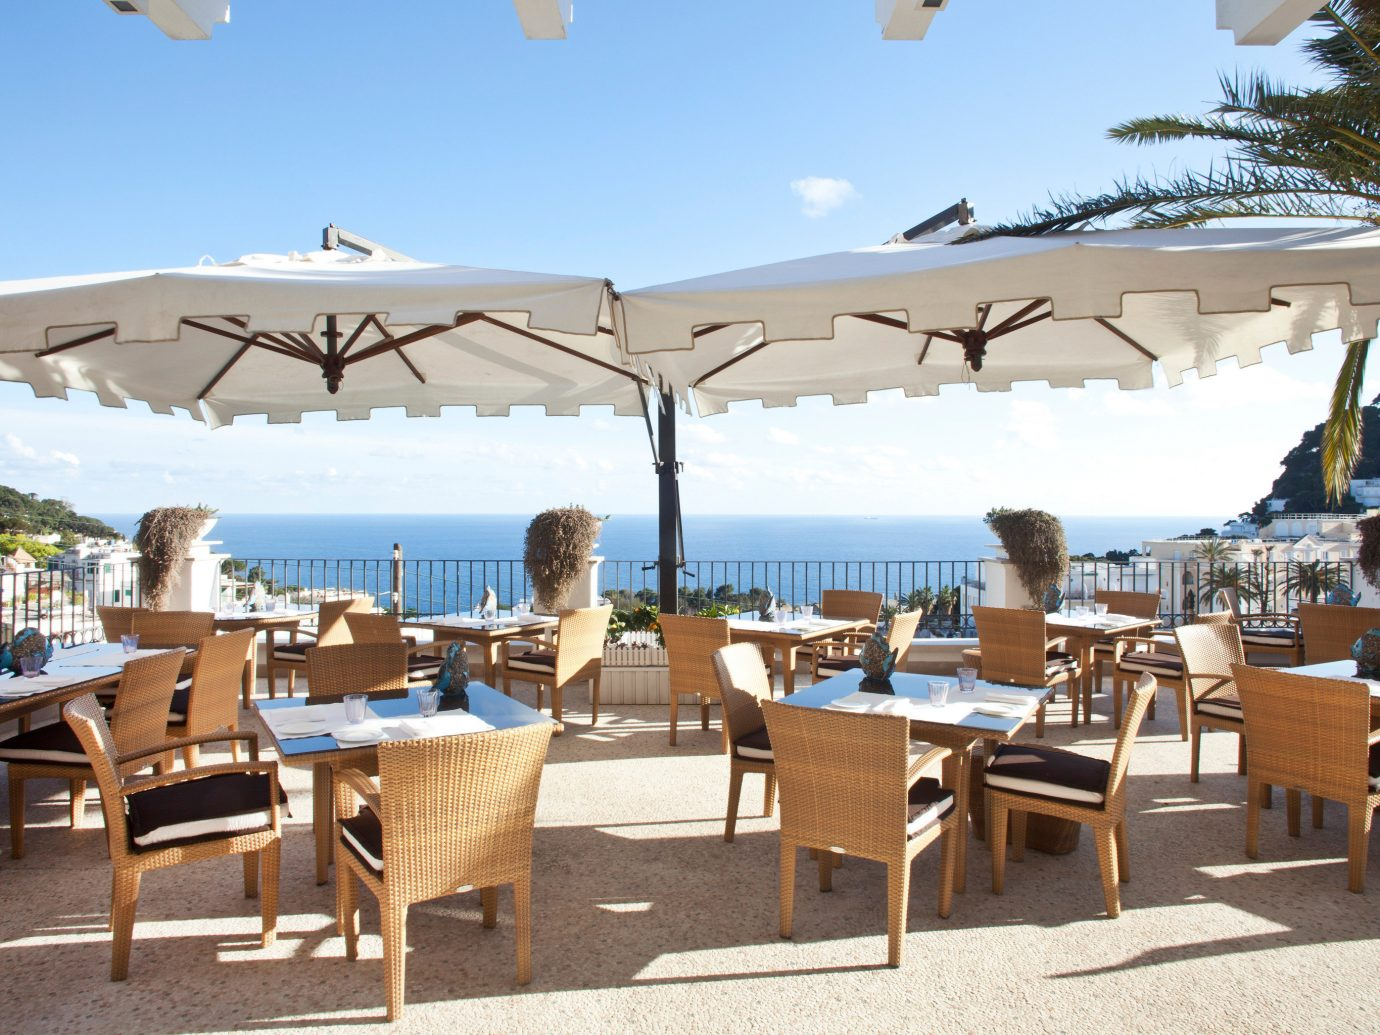 Outdoor dining at Capri Tiberio Palace, Capri